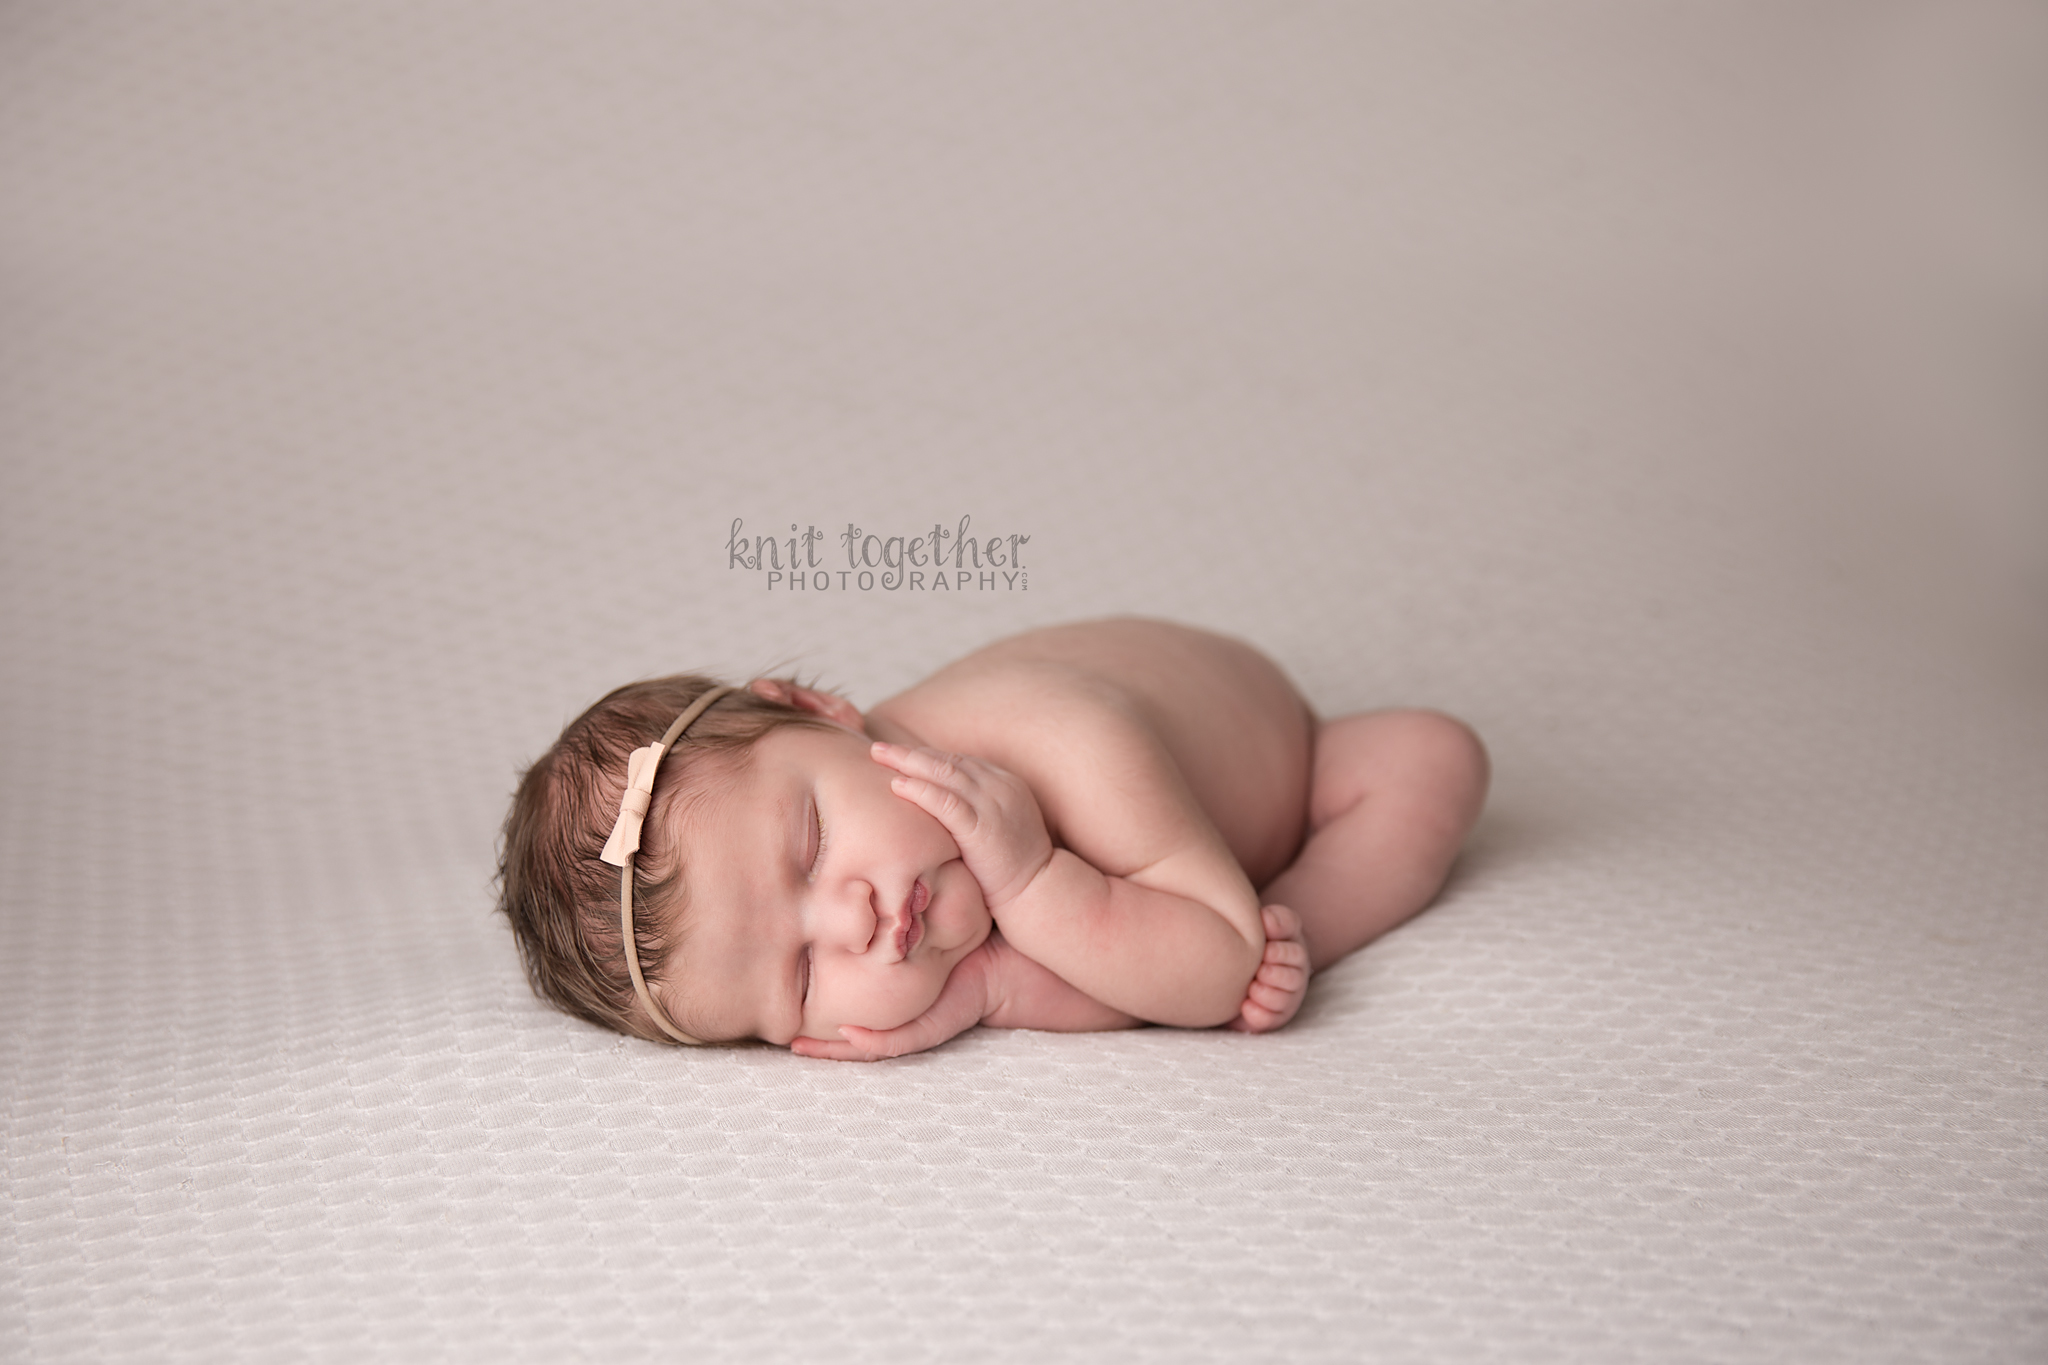 Knitting For Newborn Photography : Non traditional baby shower gifts knit together